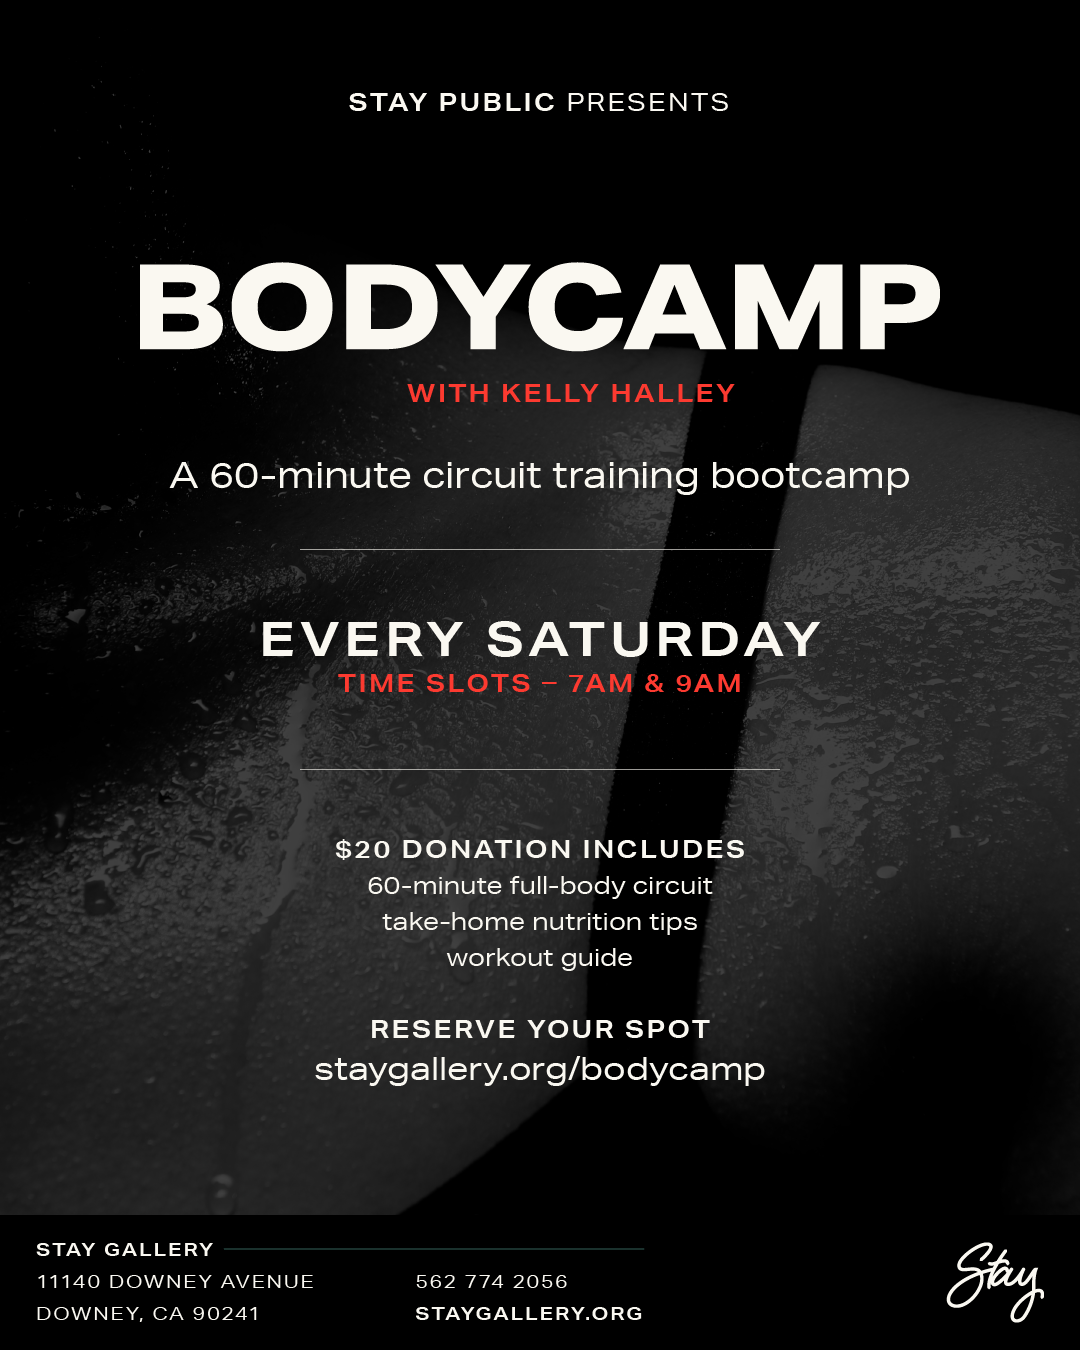 Stay Public Presents BODYCAMP with Kelly Hally.